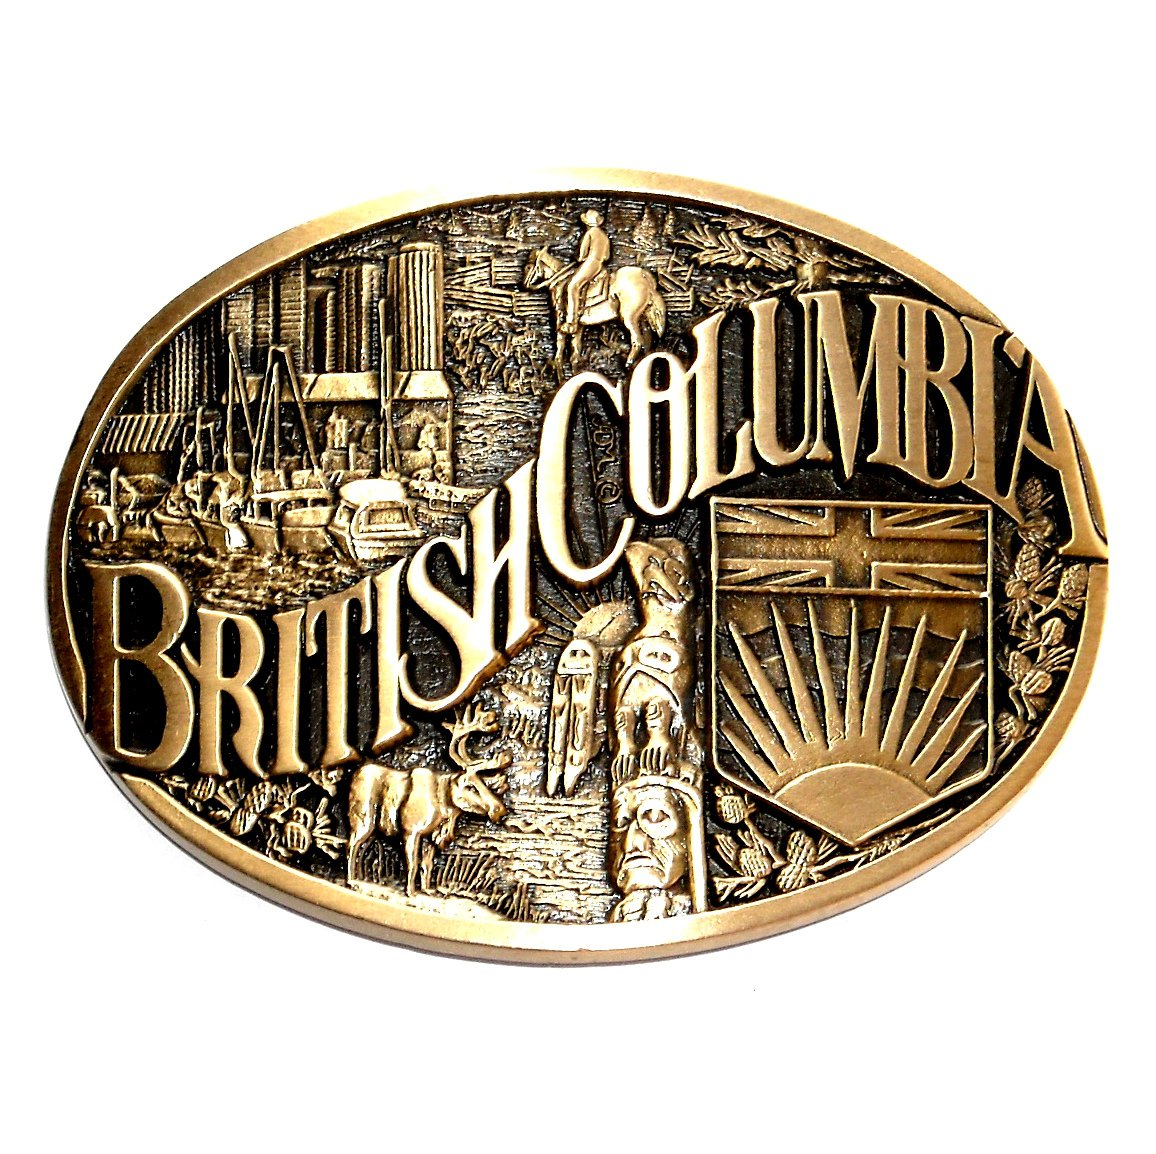 British Columbia First Edition Award Design Brass Belt Buckle